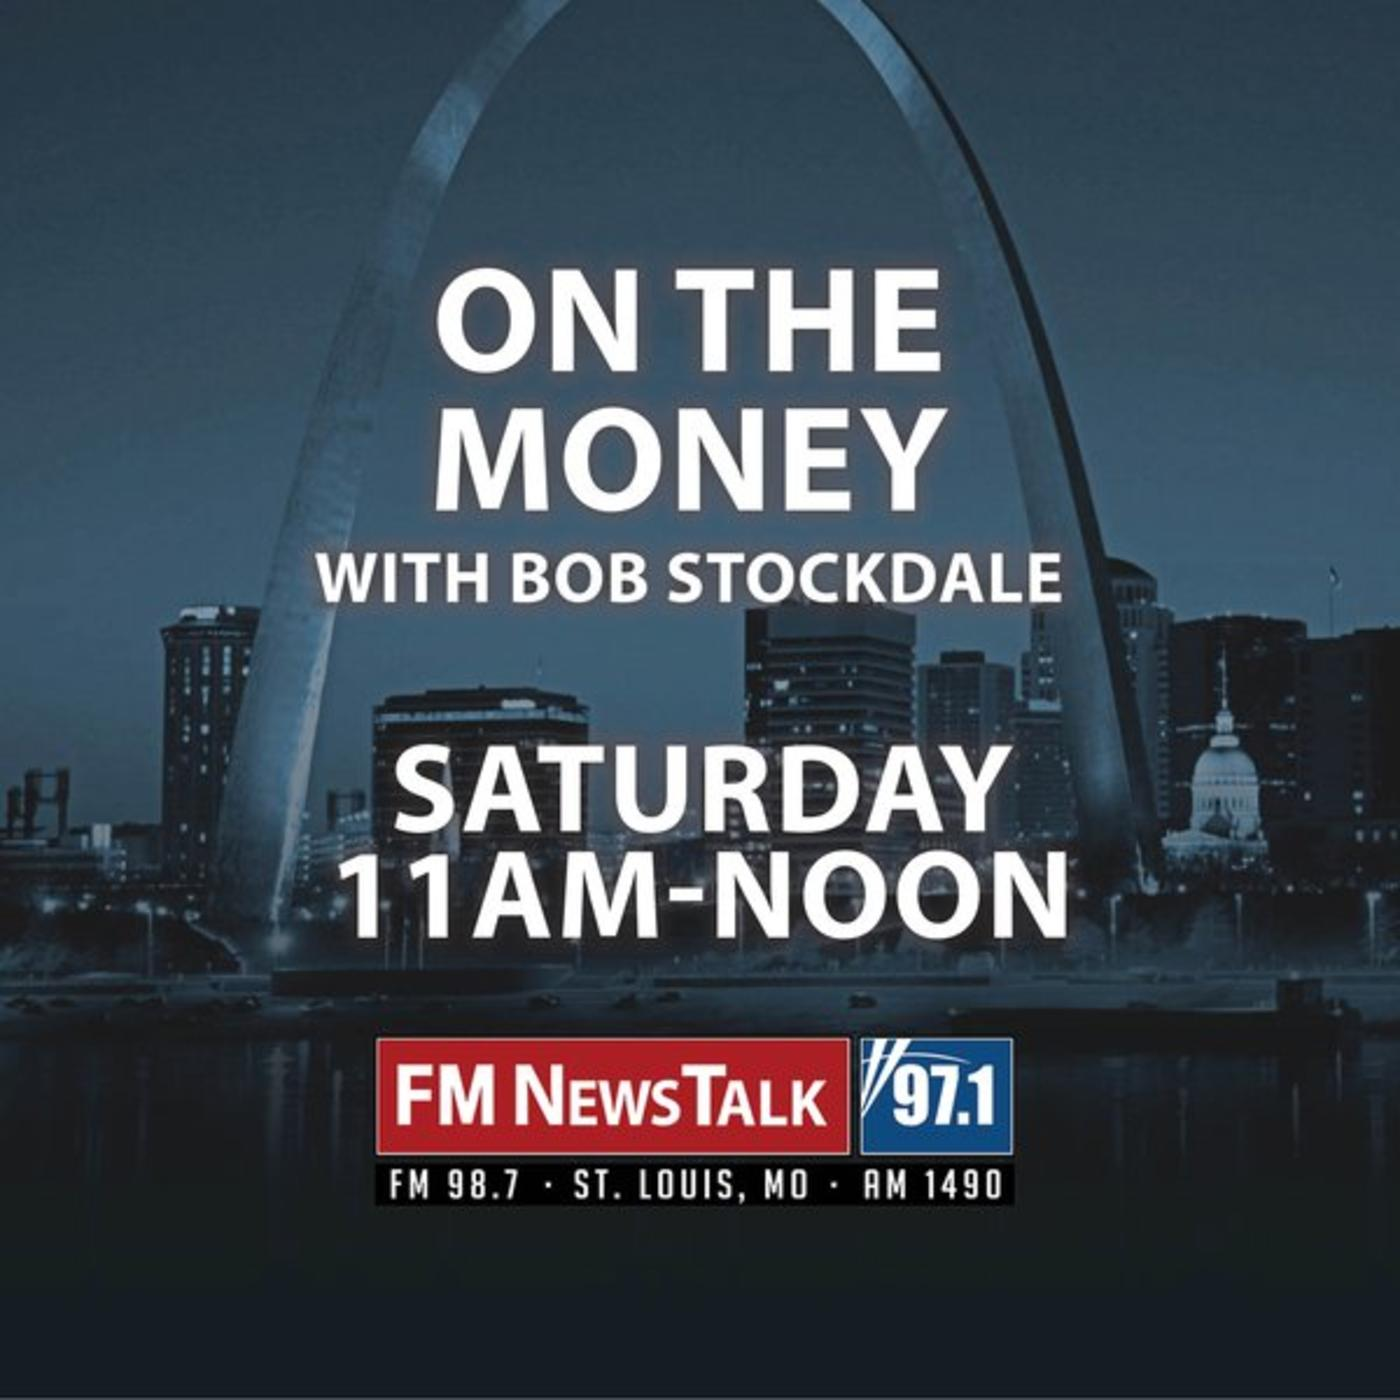 On The Money with Bob Stockdale: Saturday 11a-12noon